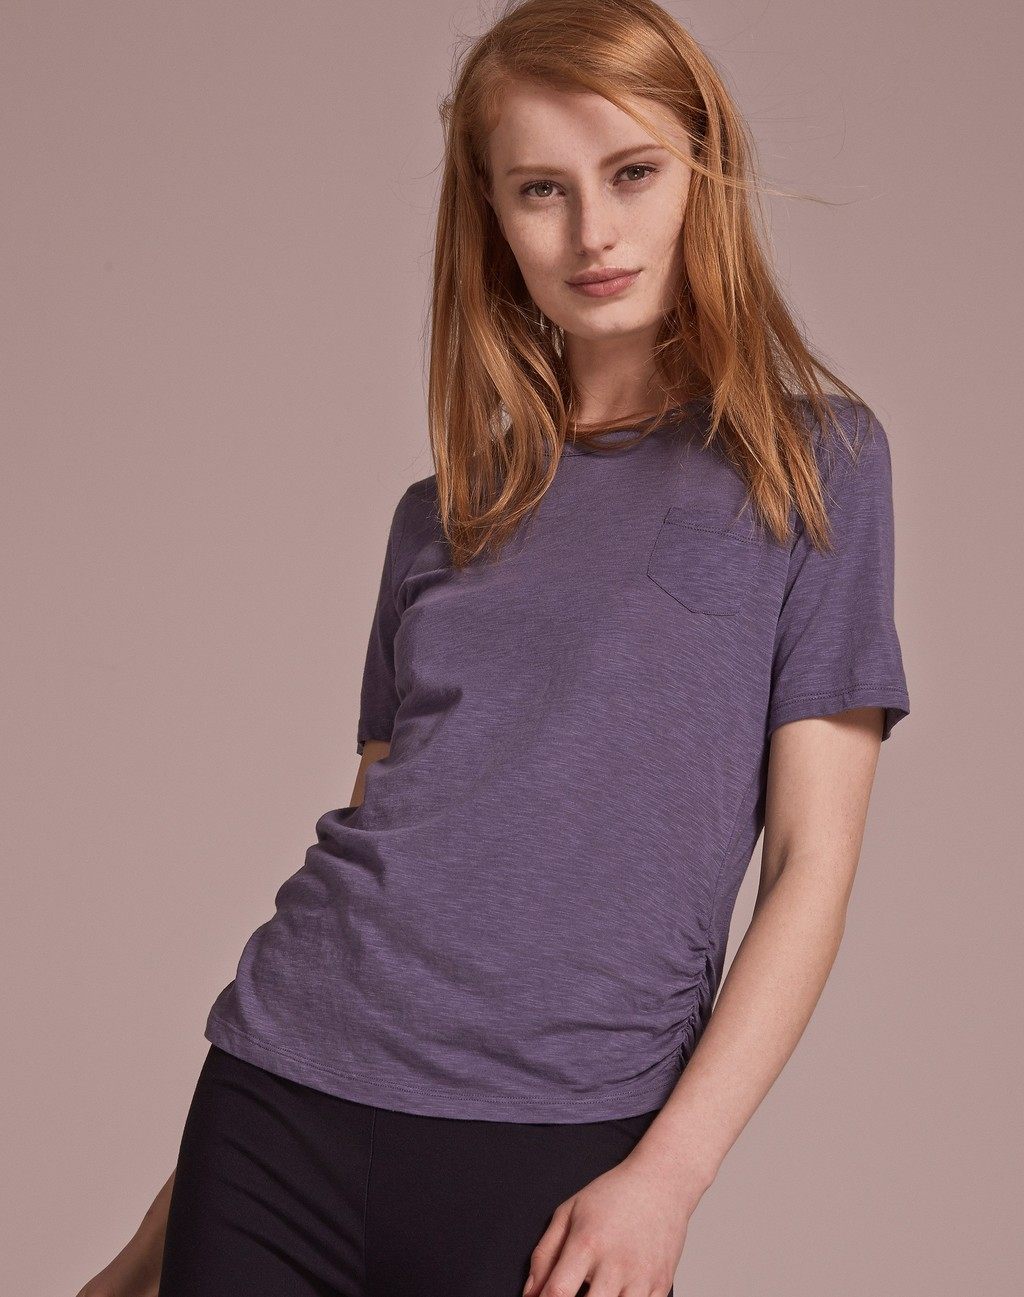 The Perfect Crew Neck Tee Denim Blue - pattern: plain; style: t-shirt; predominant colour: charcoal; occasions: casual; length: standard; fibres: cotton - stretch; fit: body skimming; neckline: crew; sleeve length: short sleeve; sleeve style: standard; texture group: jersey - clingy; pattern type: fabric; season: s/s 2016; wardrobe: basic